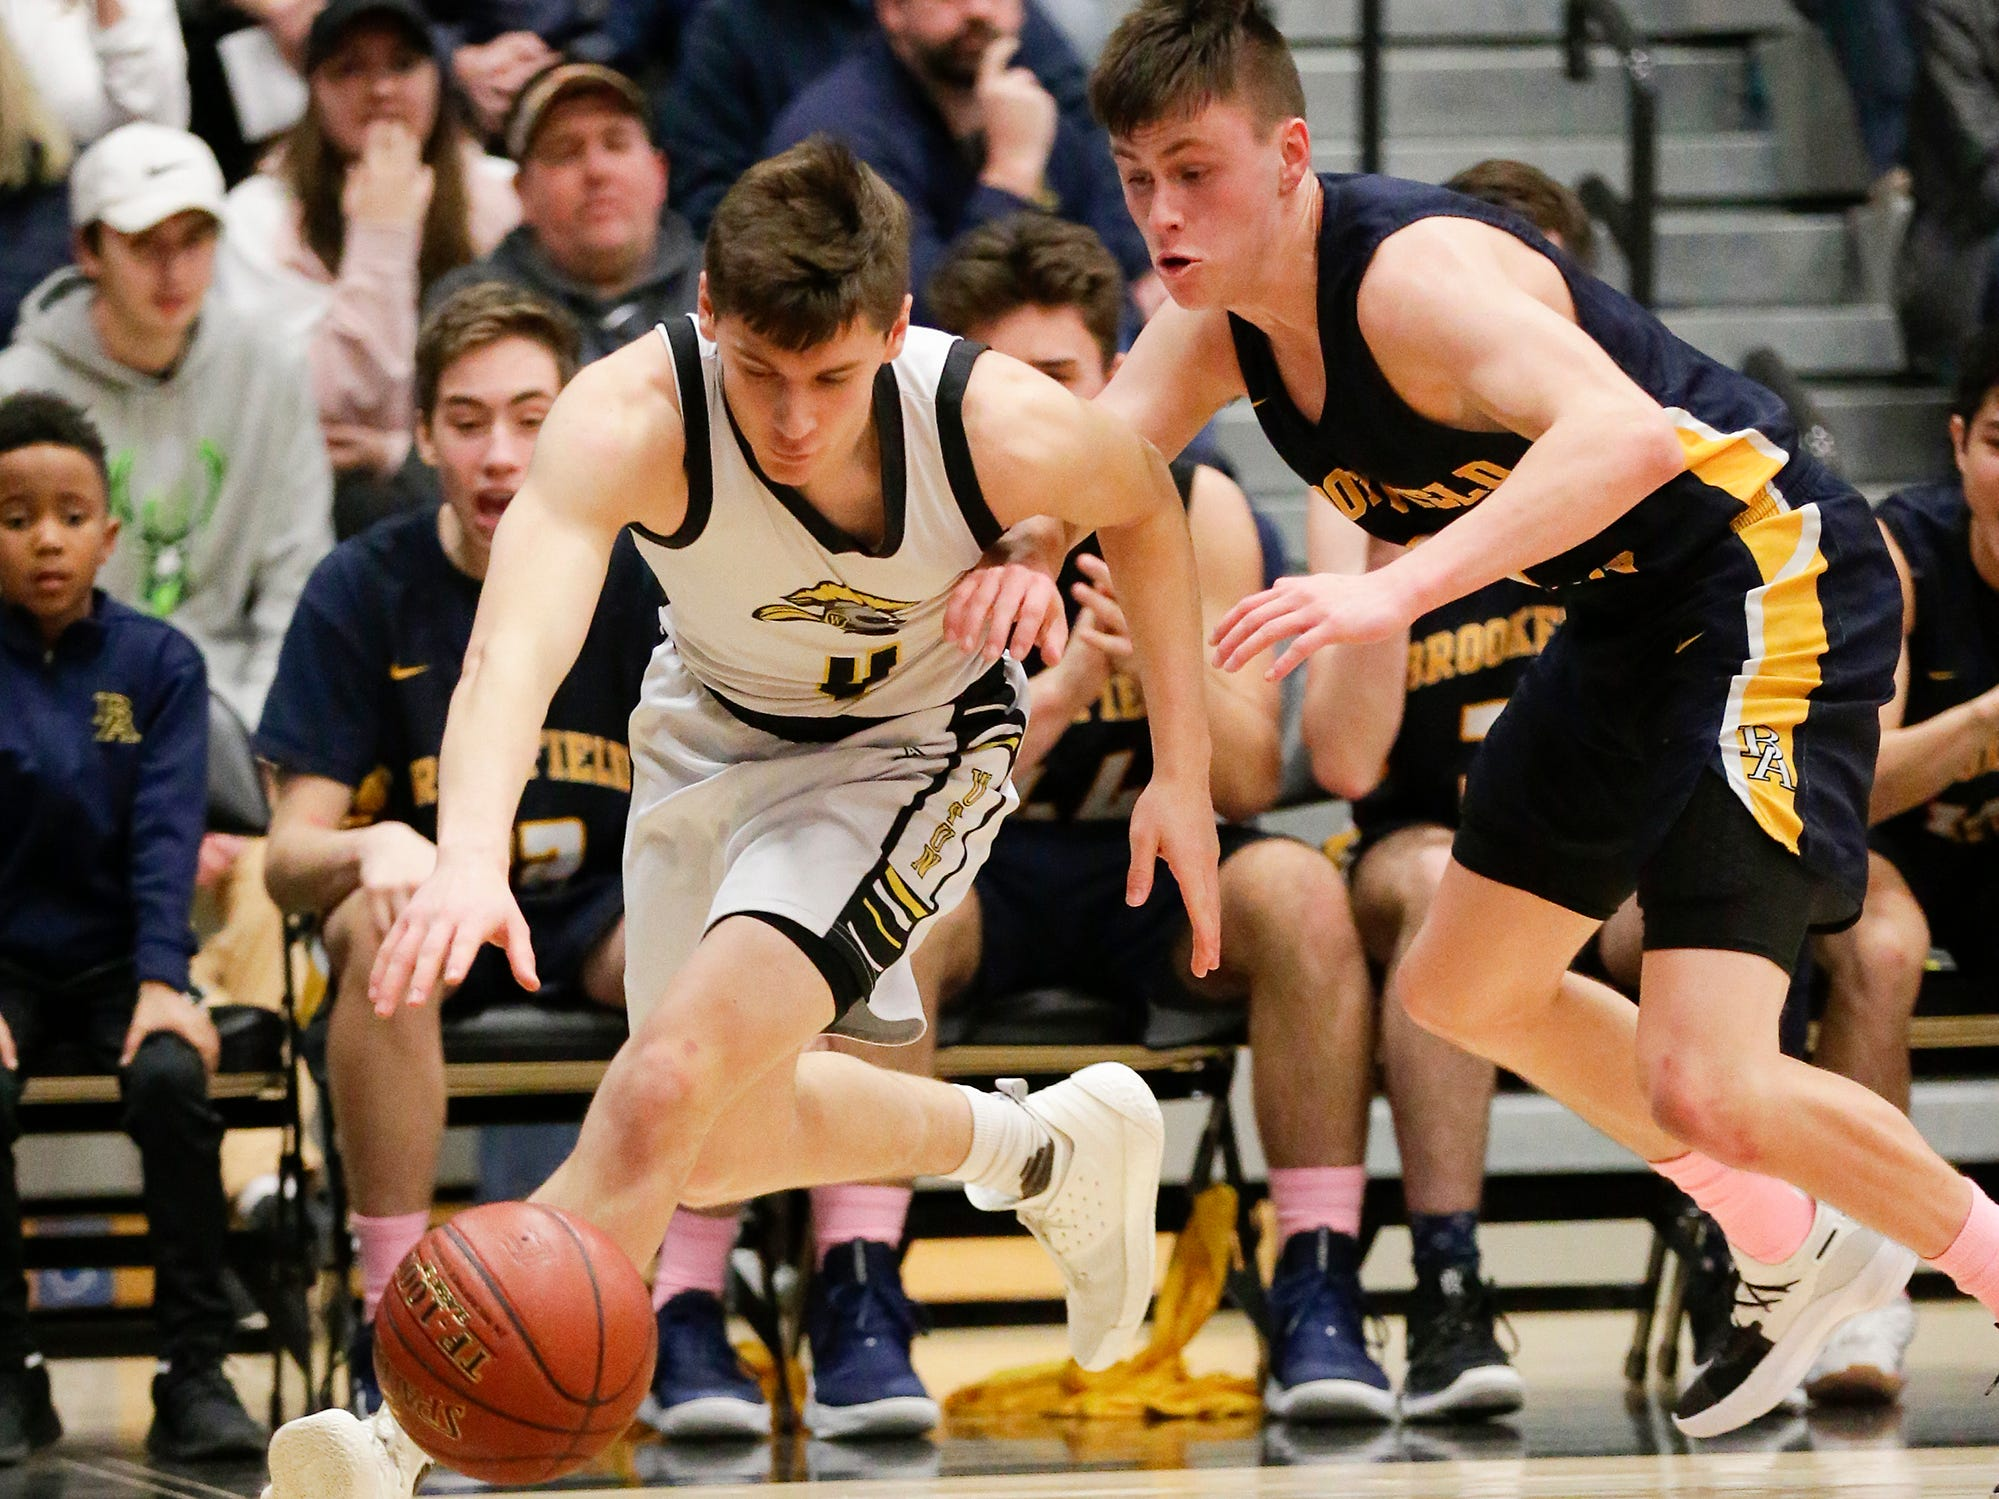 Waupun High School boys basketball's Benet Veleke (4) battles for a loose ball with Brookfield Academy's Aiden Clarey (1) during their WIAA division 3 sectional final game Saturday, March 9, 2019 in Brown Deer, Wis. Waupun won the game 64-58 and will advance to the state tournament.